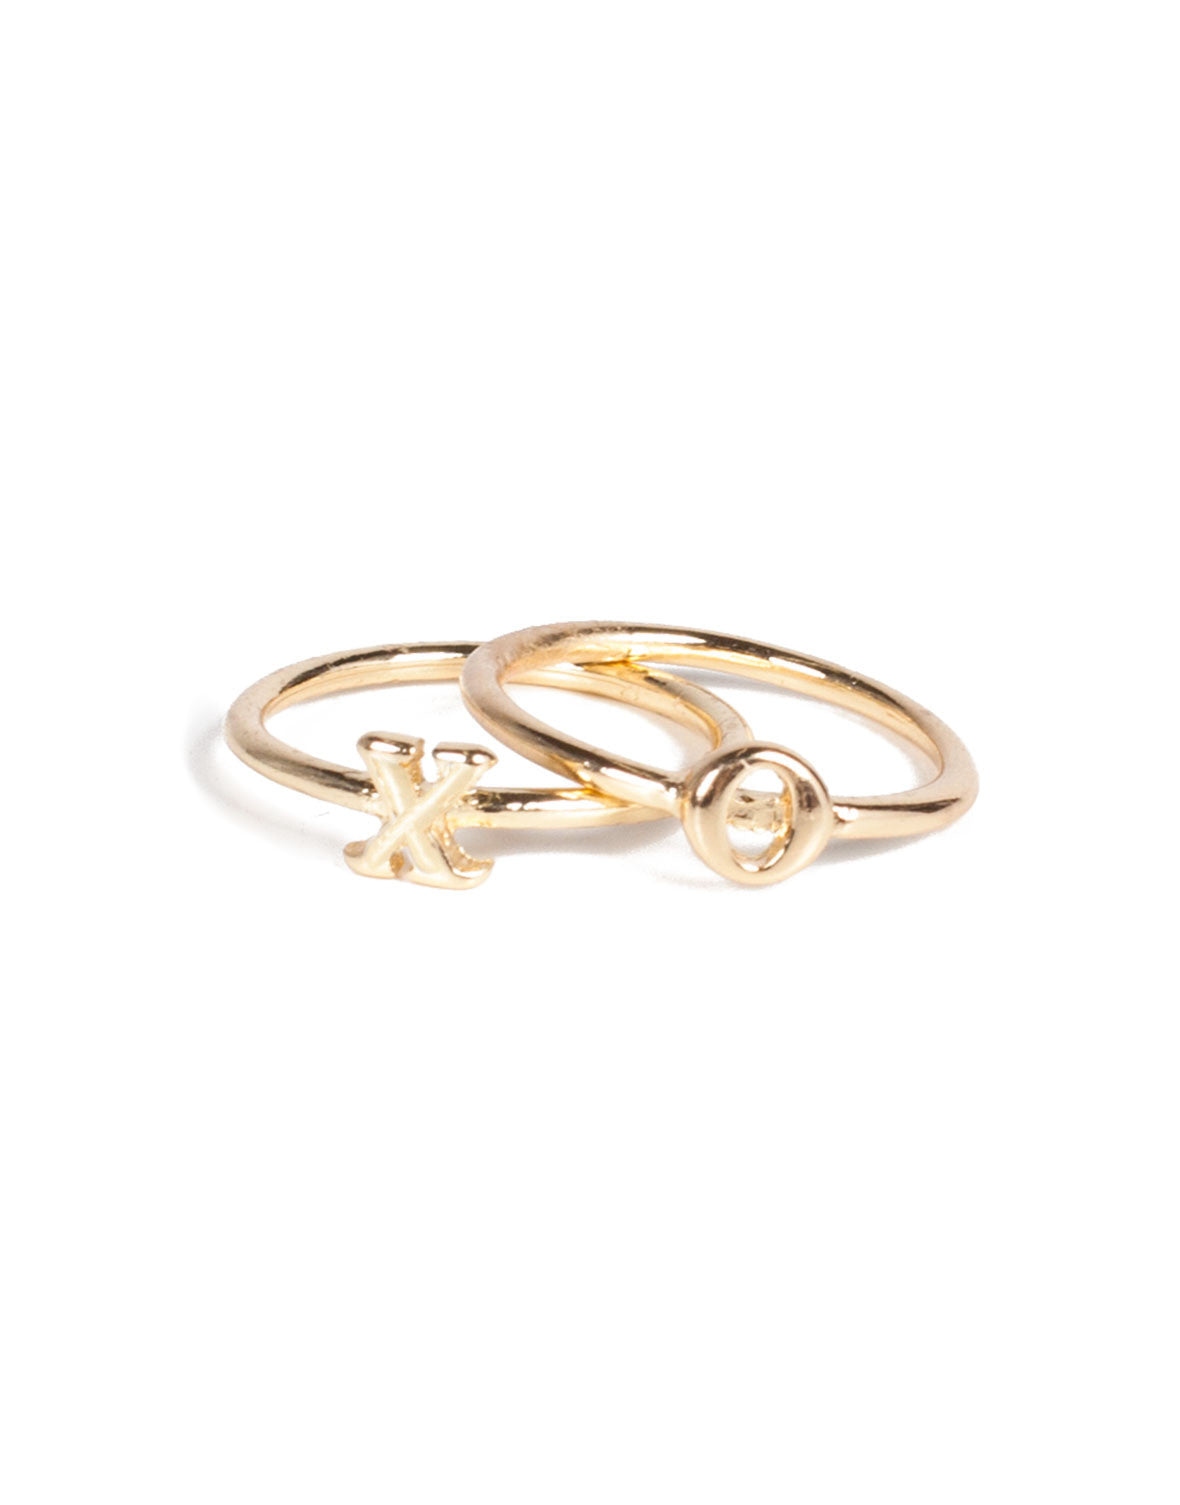 XO Duo Ring Set